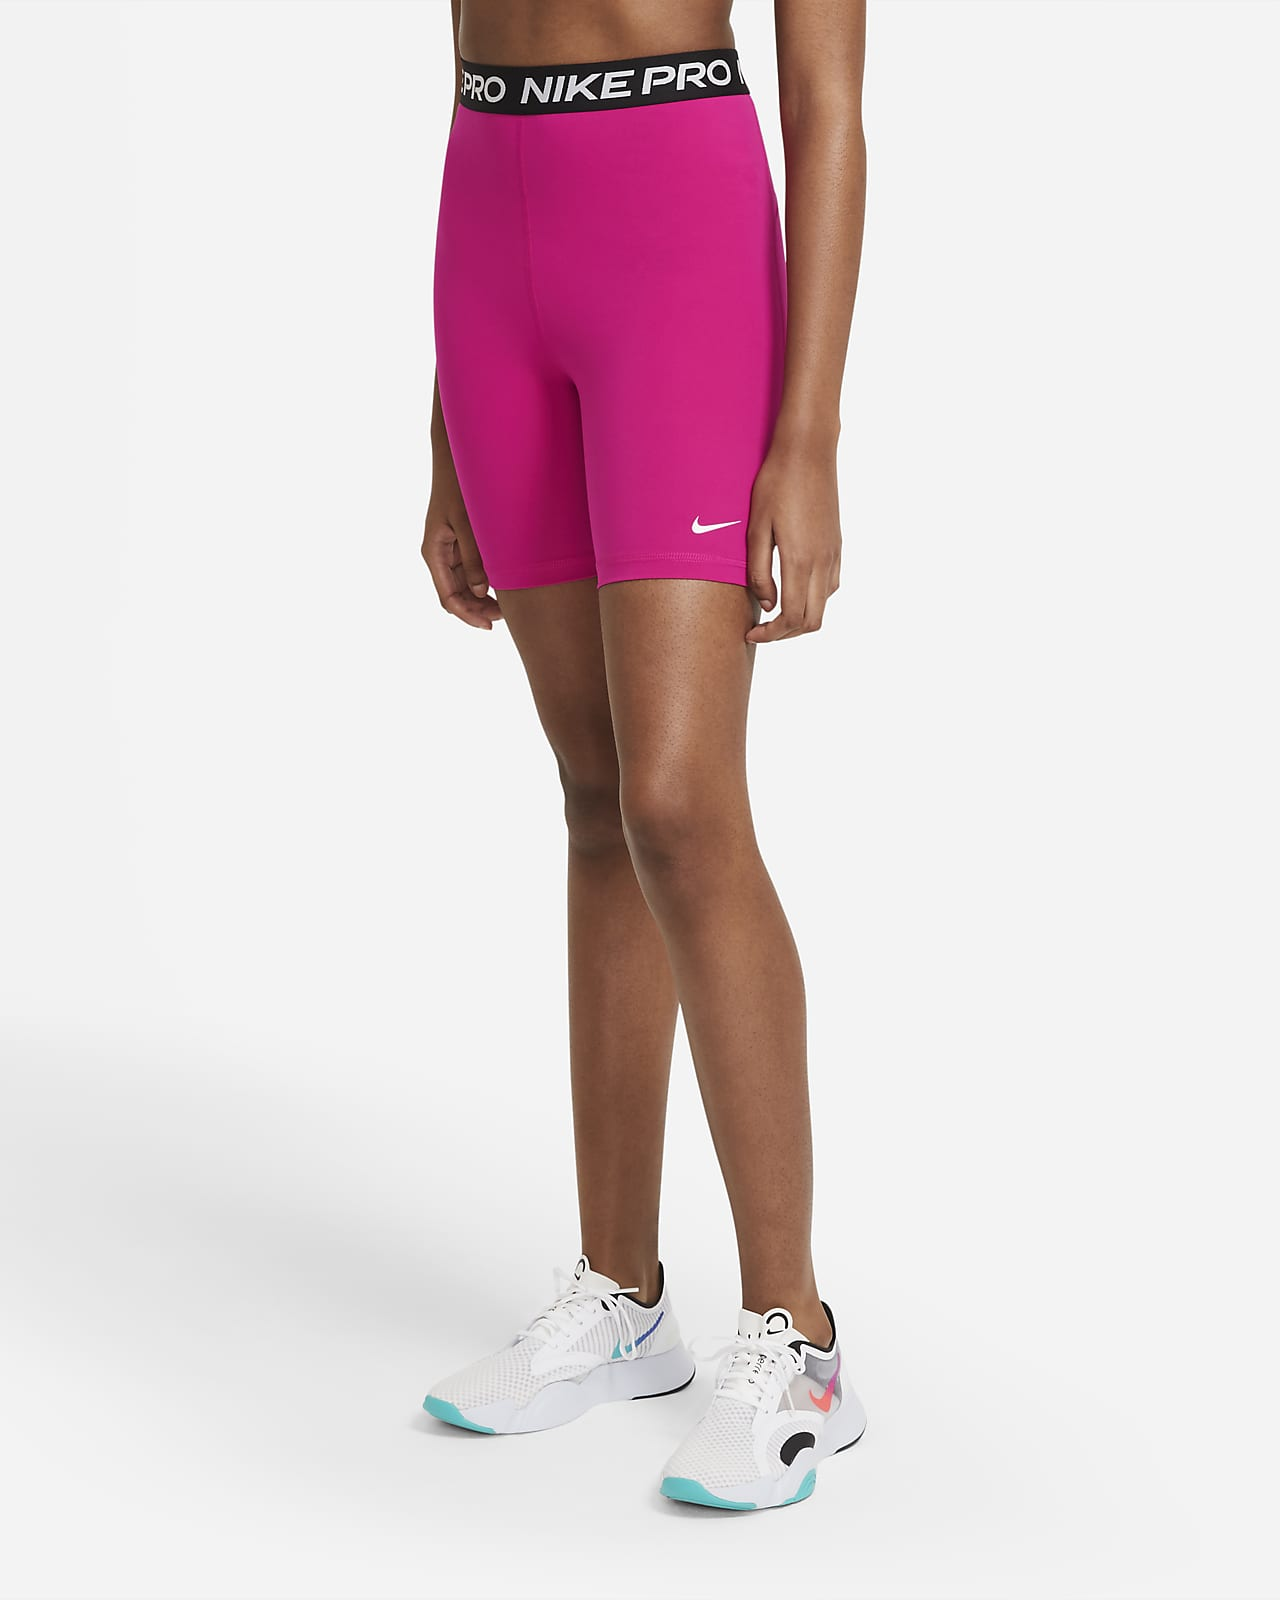 Nike Pro 365 Women's High-Rise 18cm (approx.) Shorts